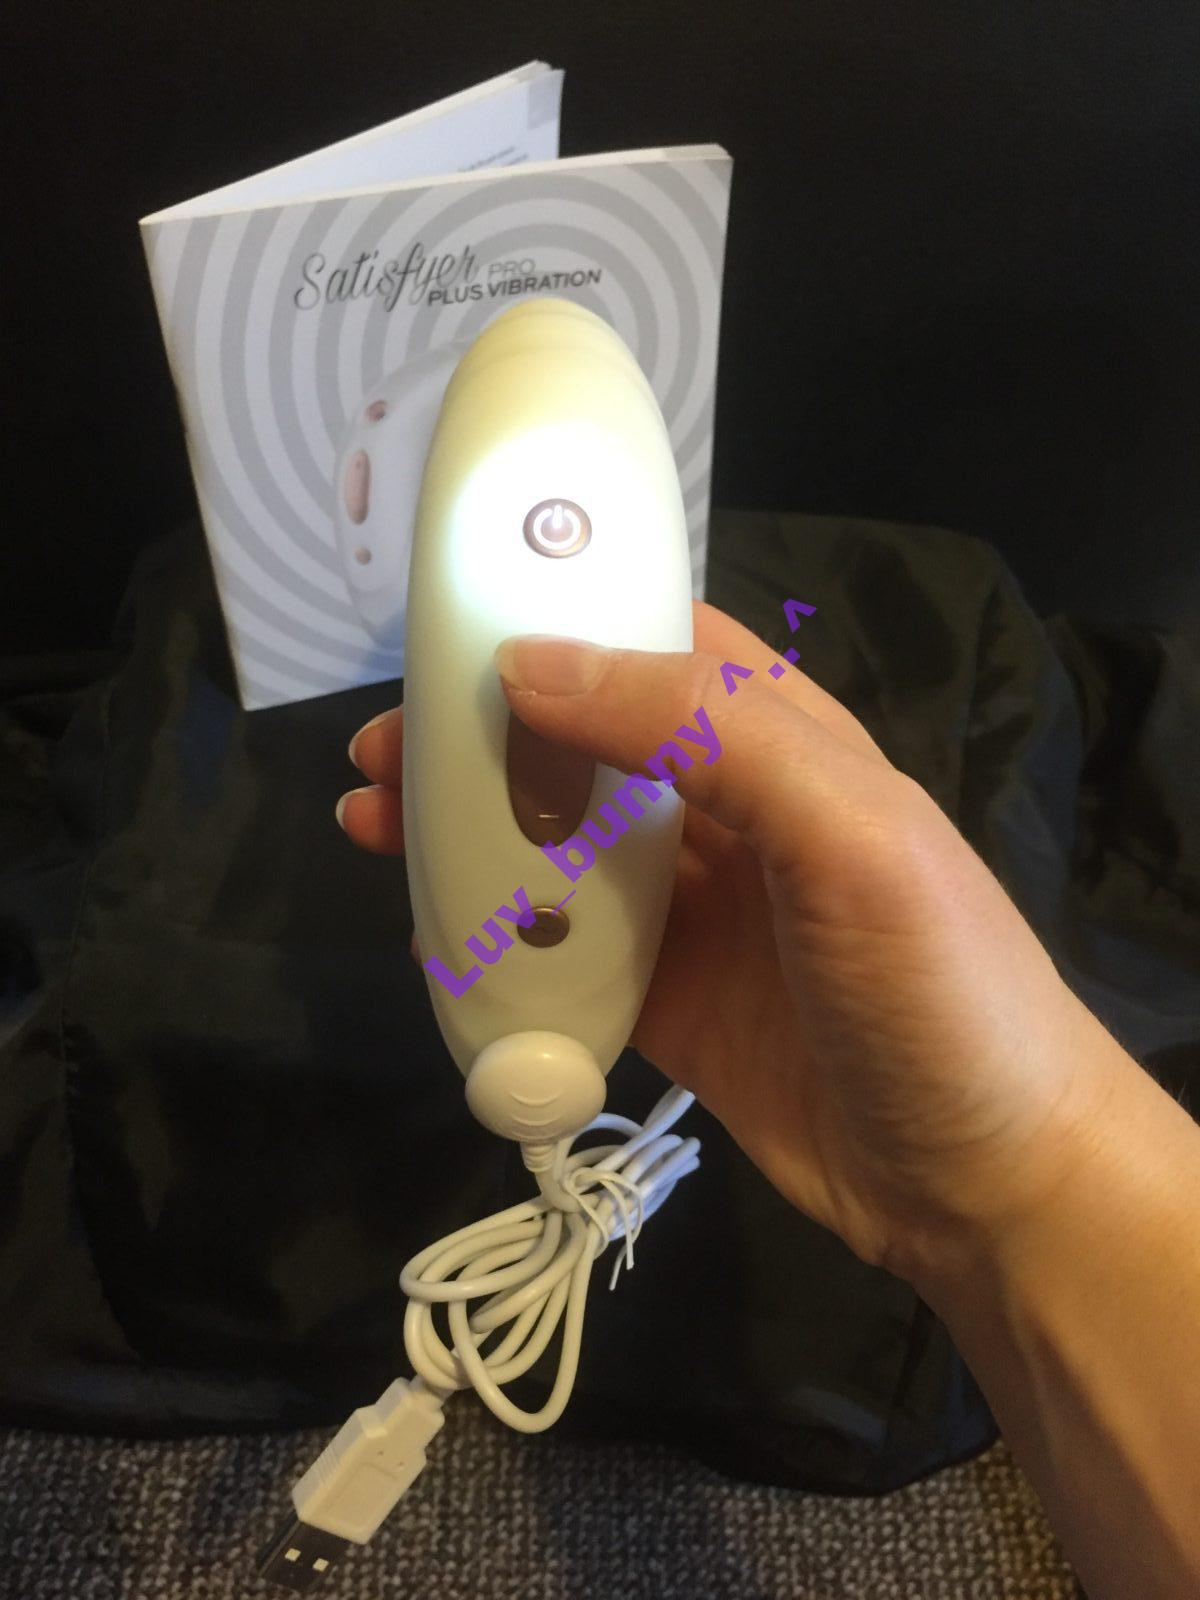 January sucks, so here's a Satisfyer Pro Plus Vibration giveaway to make it all better!